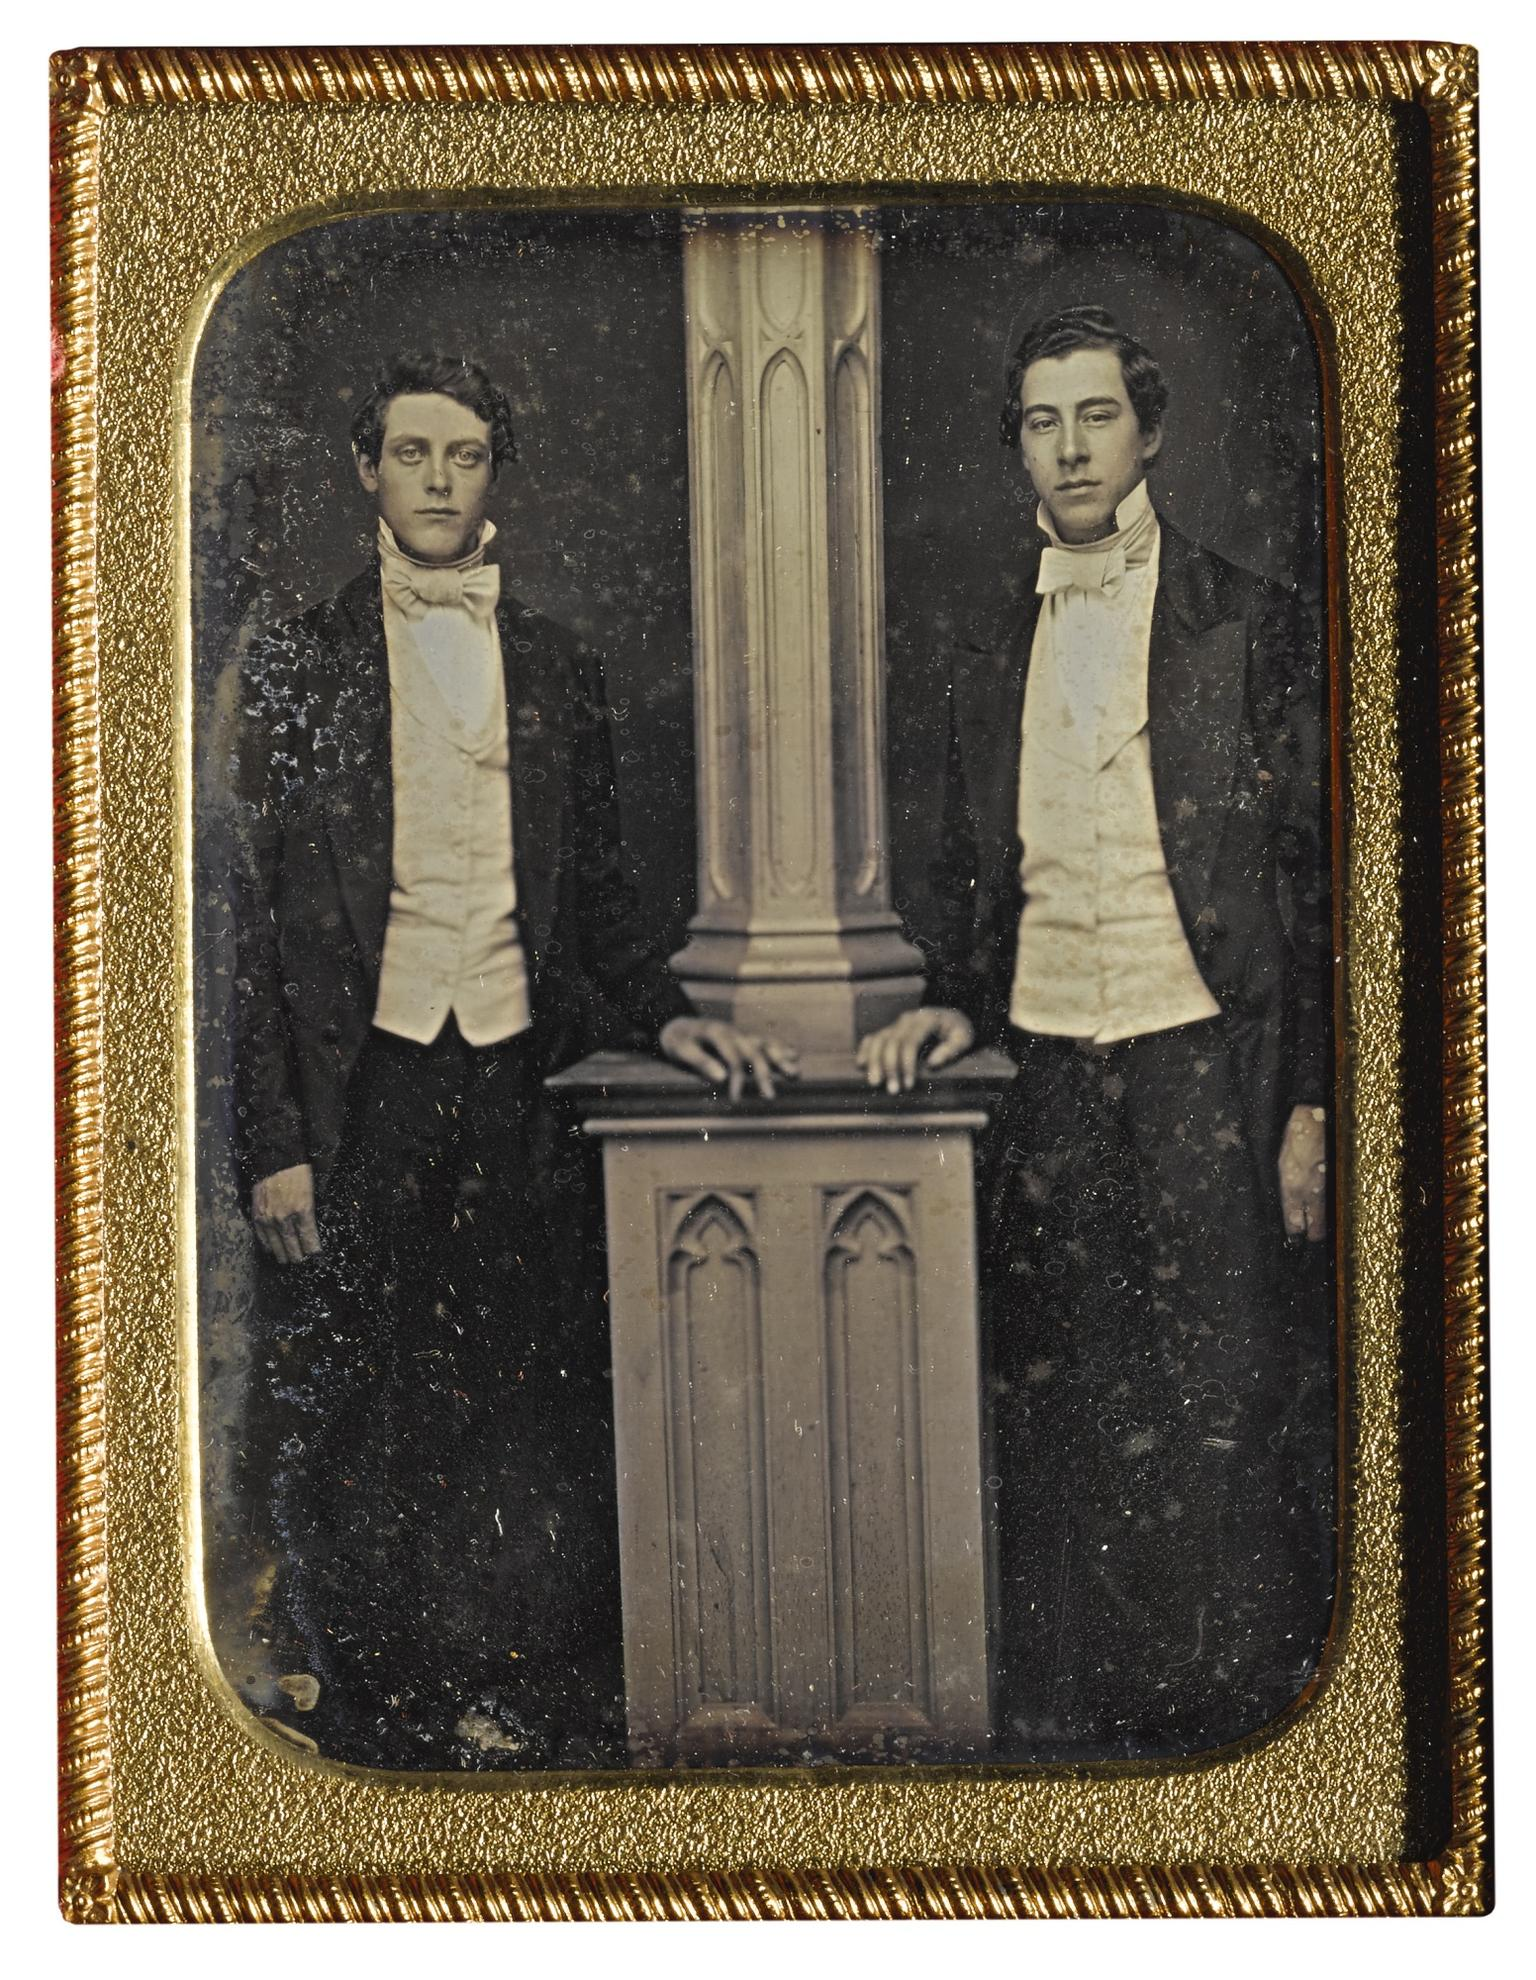 Anonymous American Photographer - Well-Dressed Men Posed By Column-1840